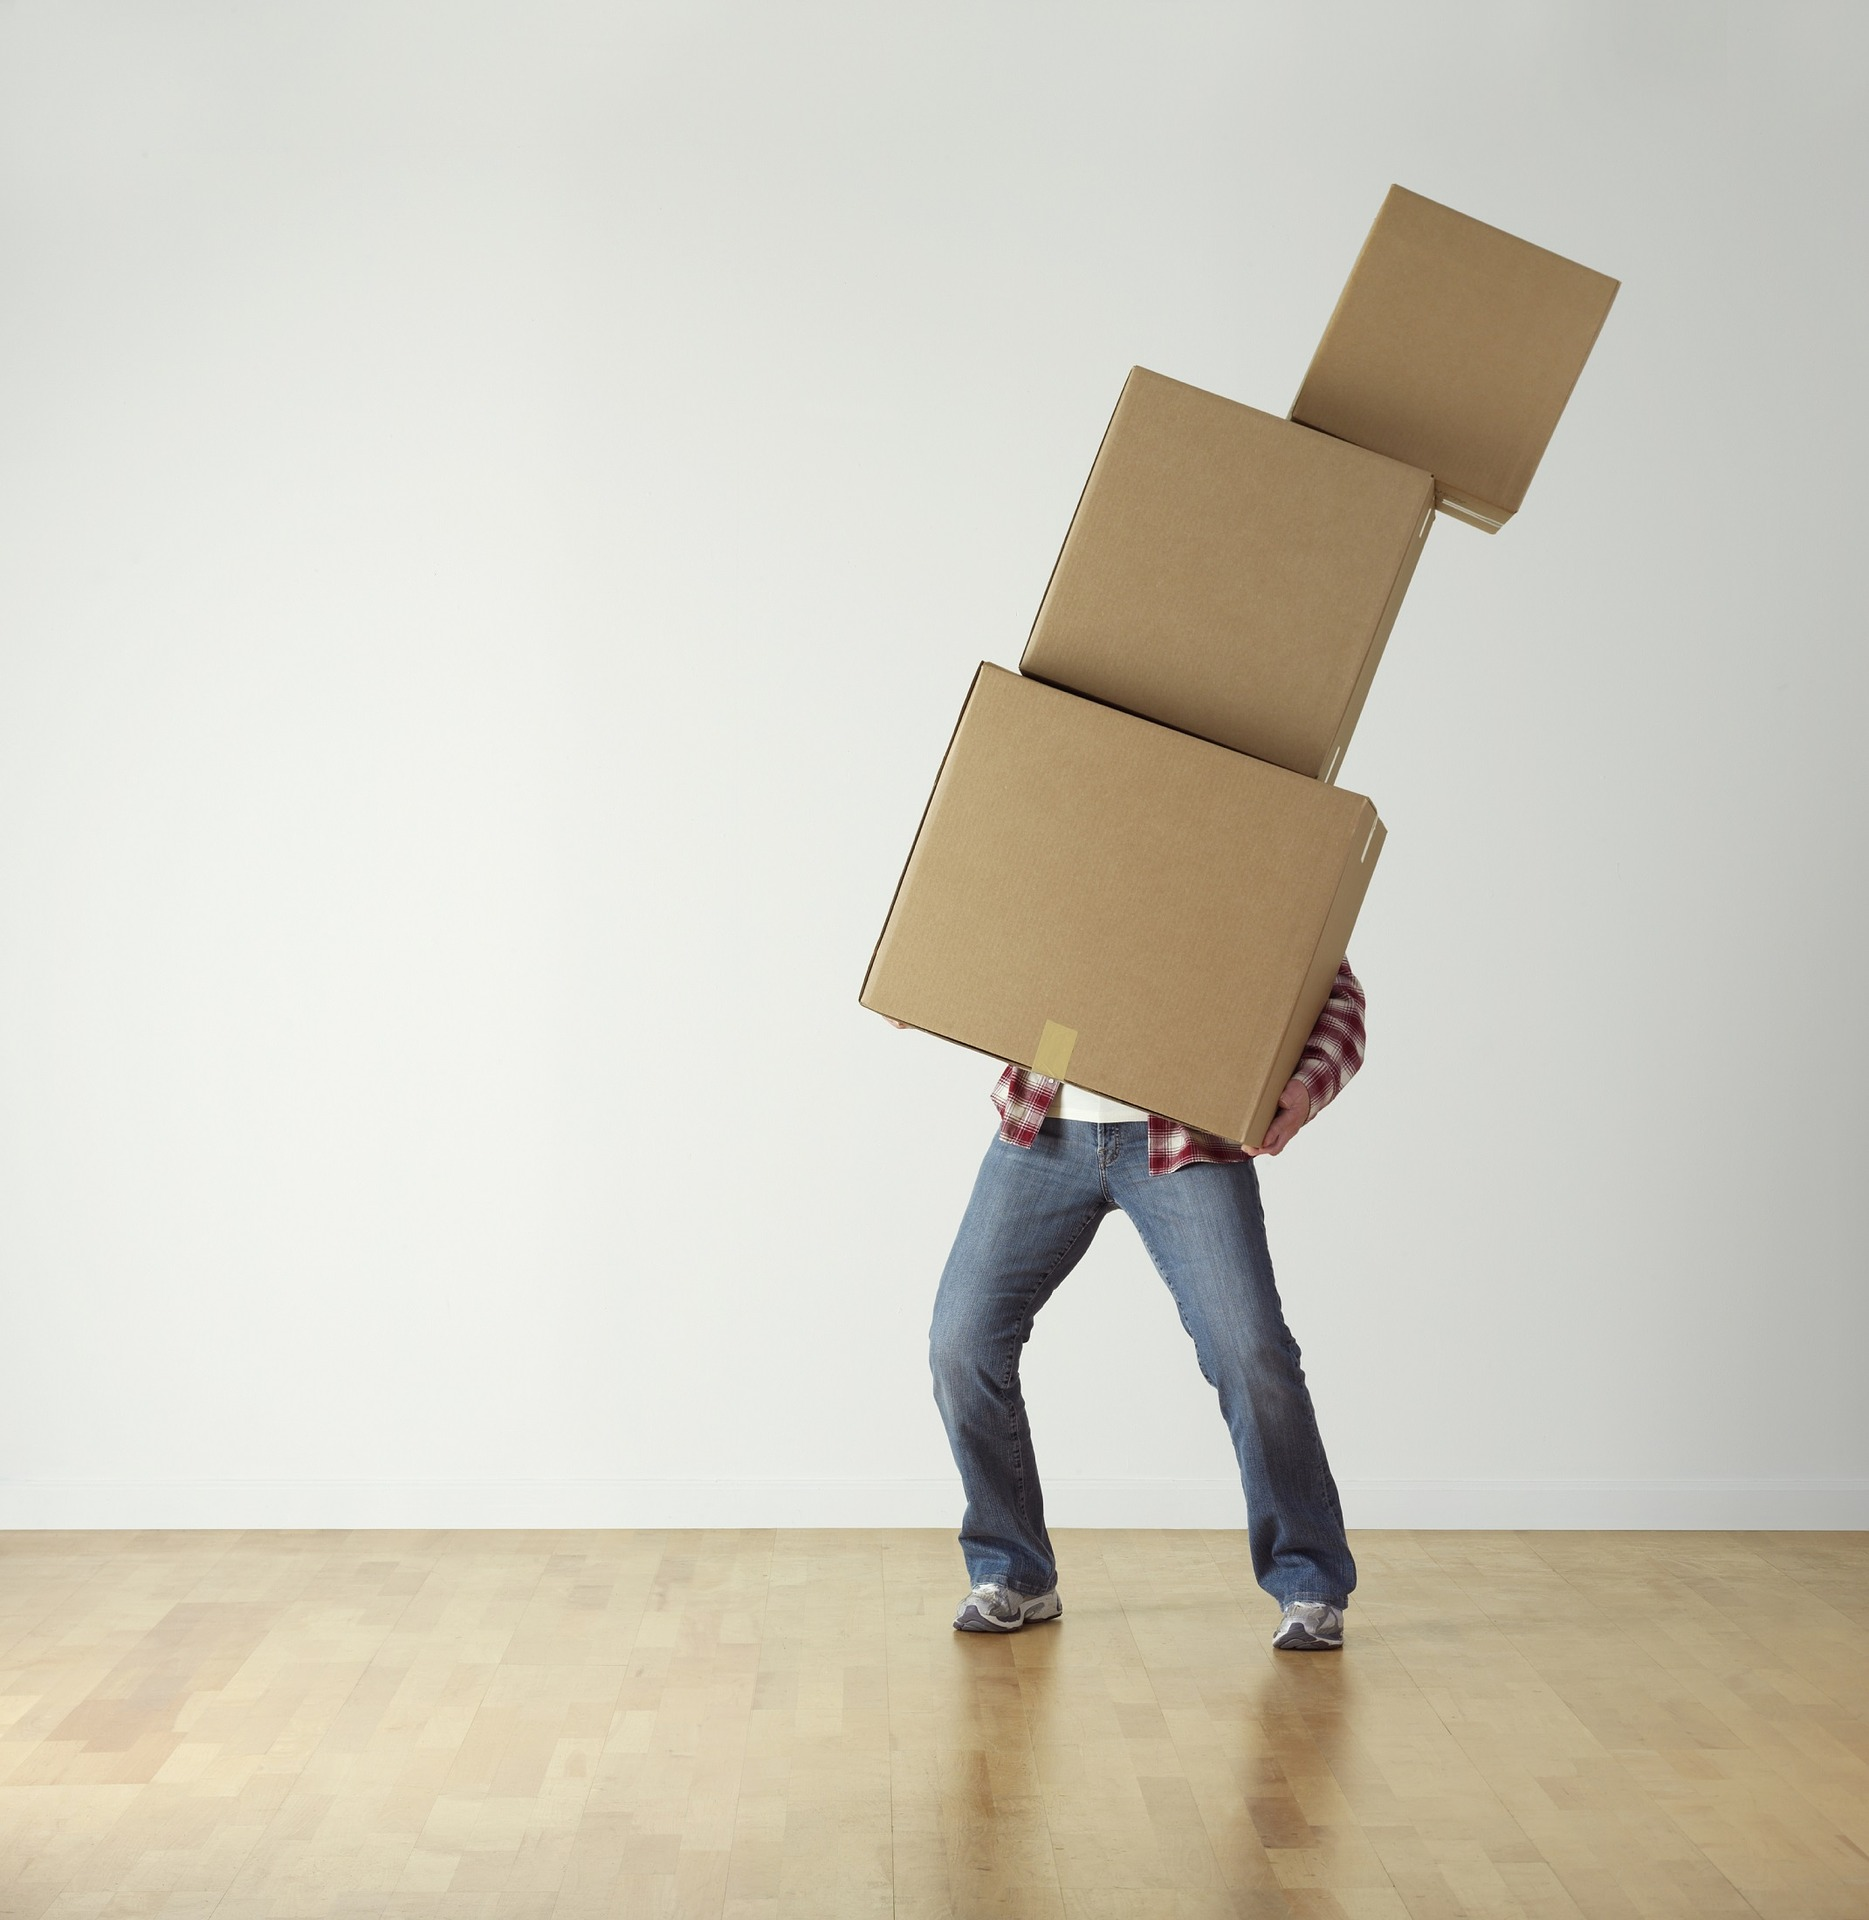 a man in an empty room carry 3 cardboard boxes